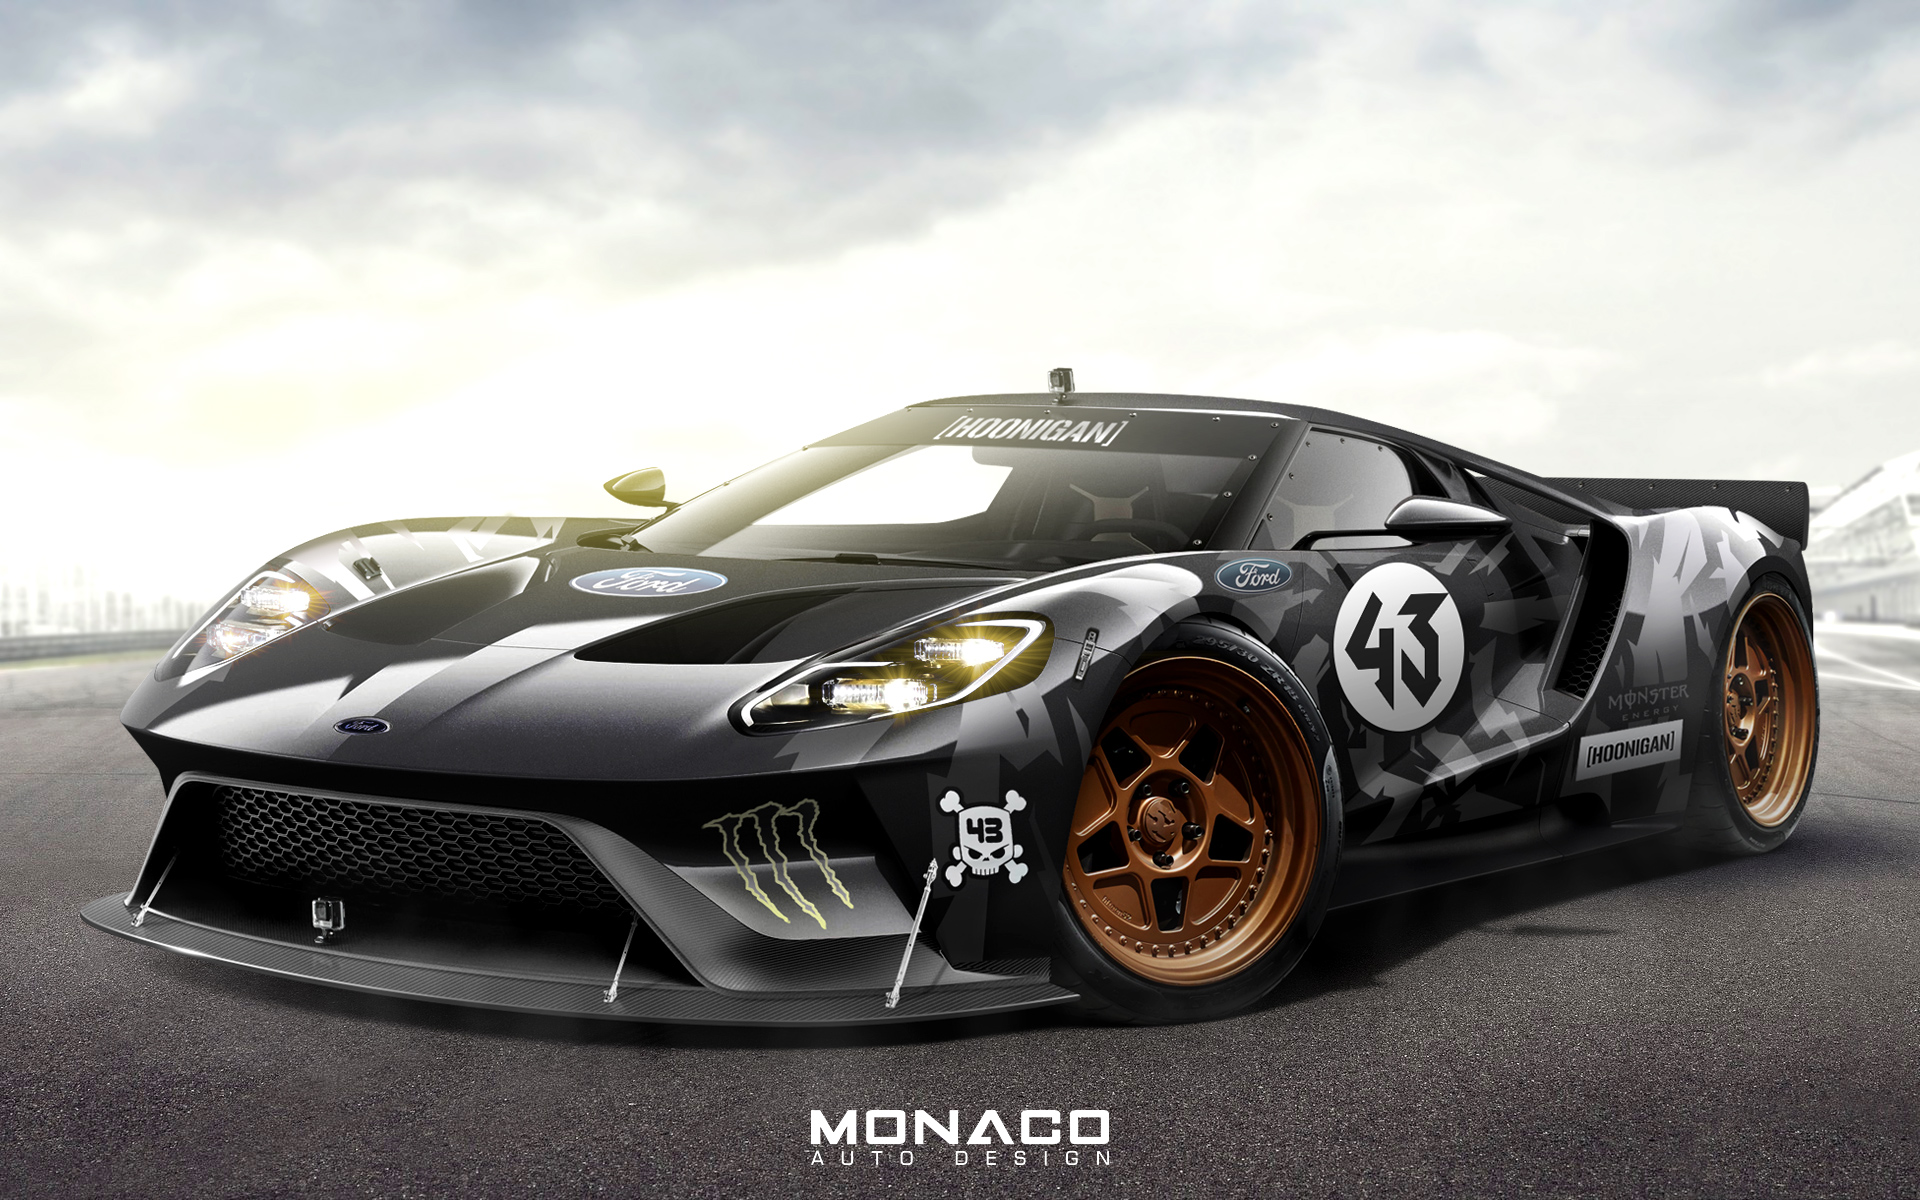 ford gt concept ken block livery by monacoautodesign on deviantart. Black Bedroom Furniture Sets. Home Design Ideas